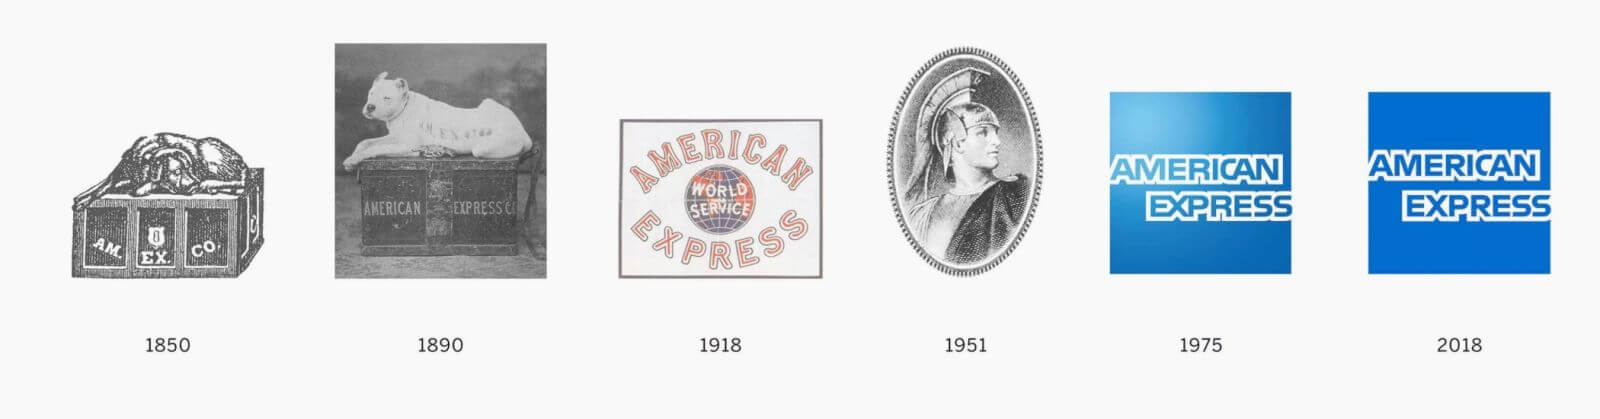 The AMEX logo evolution since 1850.